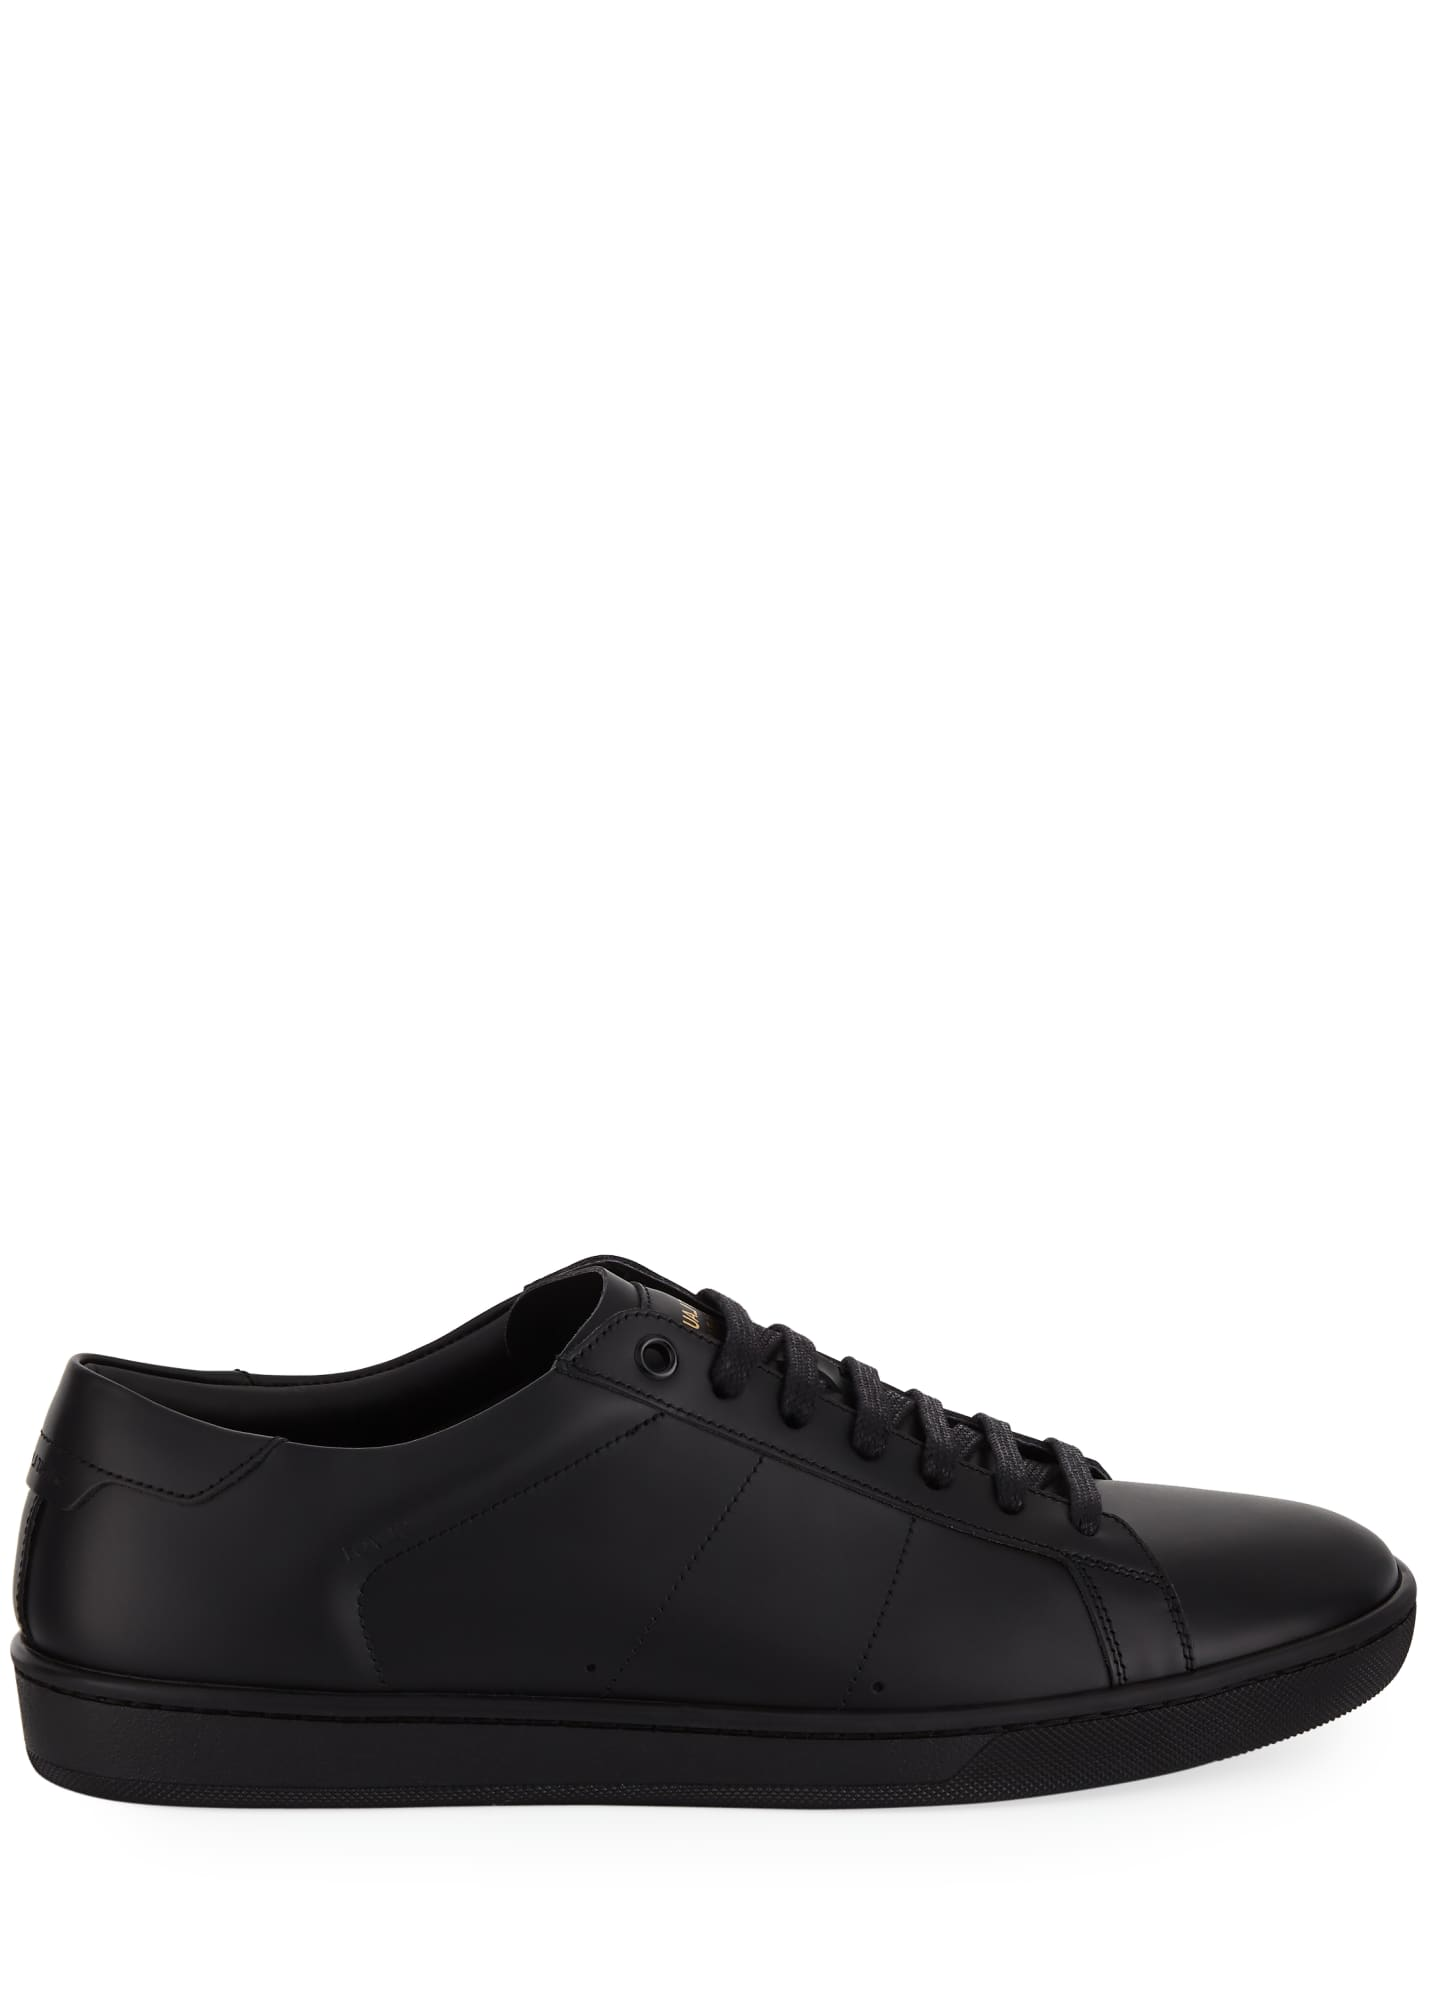 Image 3 of 3: Men's SL01 Leather Low-Top Sneakers